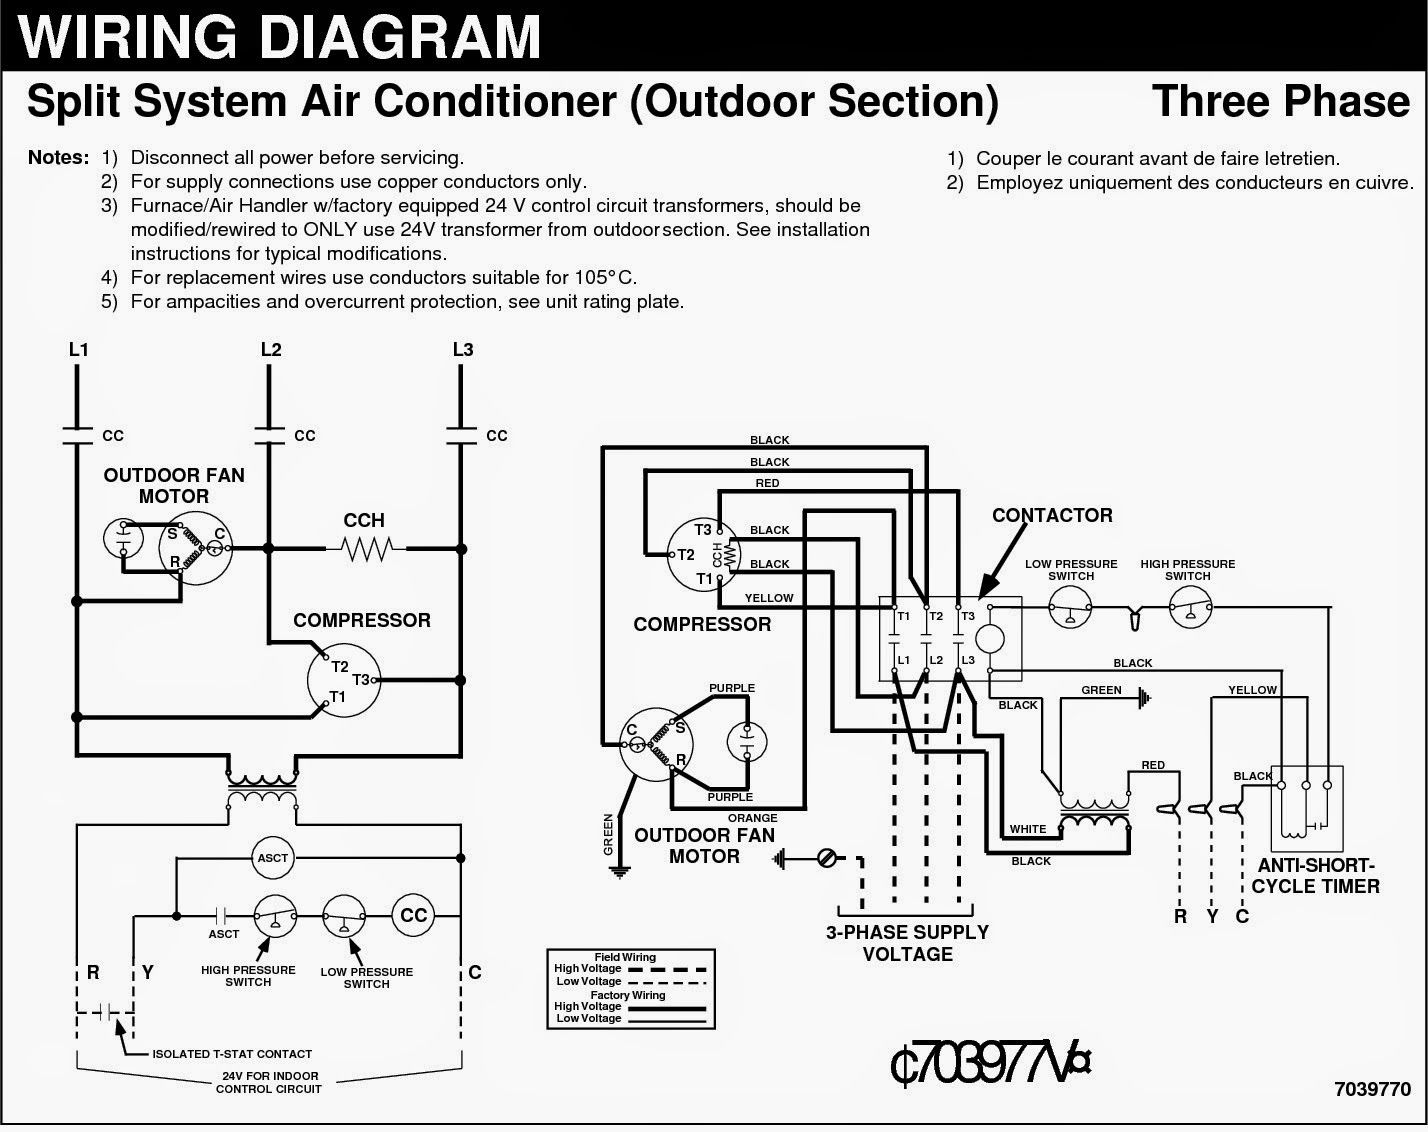 3 Phase Ac Electrical Wiring Diagrams - Just Wiring Data on air conditioner compressor, air conditioner electrical, air conditioner test equipment, air conditioner air flow diagram, air conditioner wiring connection, air handler wiring diagram, air conditioner not cooling, ceiling fans diagrams, air conditioning, hvac systems diagrams, air conditioner relay diagram, basic hvac ladder diagrams, air conditioner wires, hdmi tv cable connections diagrams, air conditioner contactor diagram, air conditioner wiring requirements, rooftop hvac unit diagrams, air switch wiring diagram, air compressor wiring diagram, air conditioner schematics,